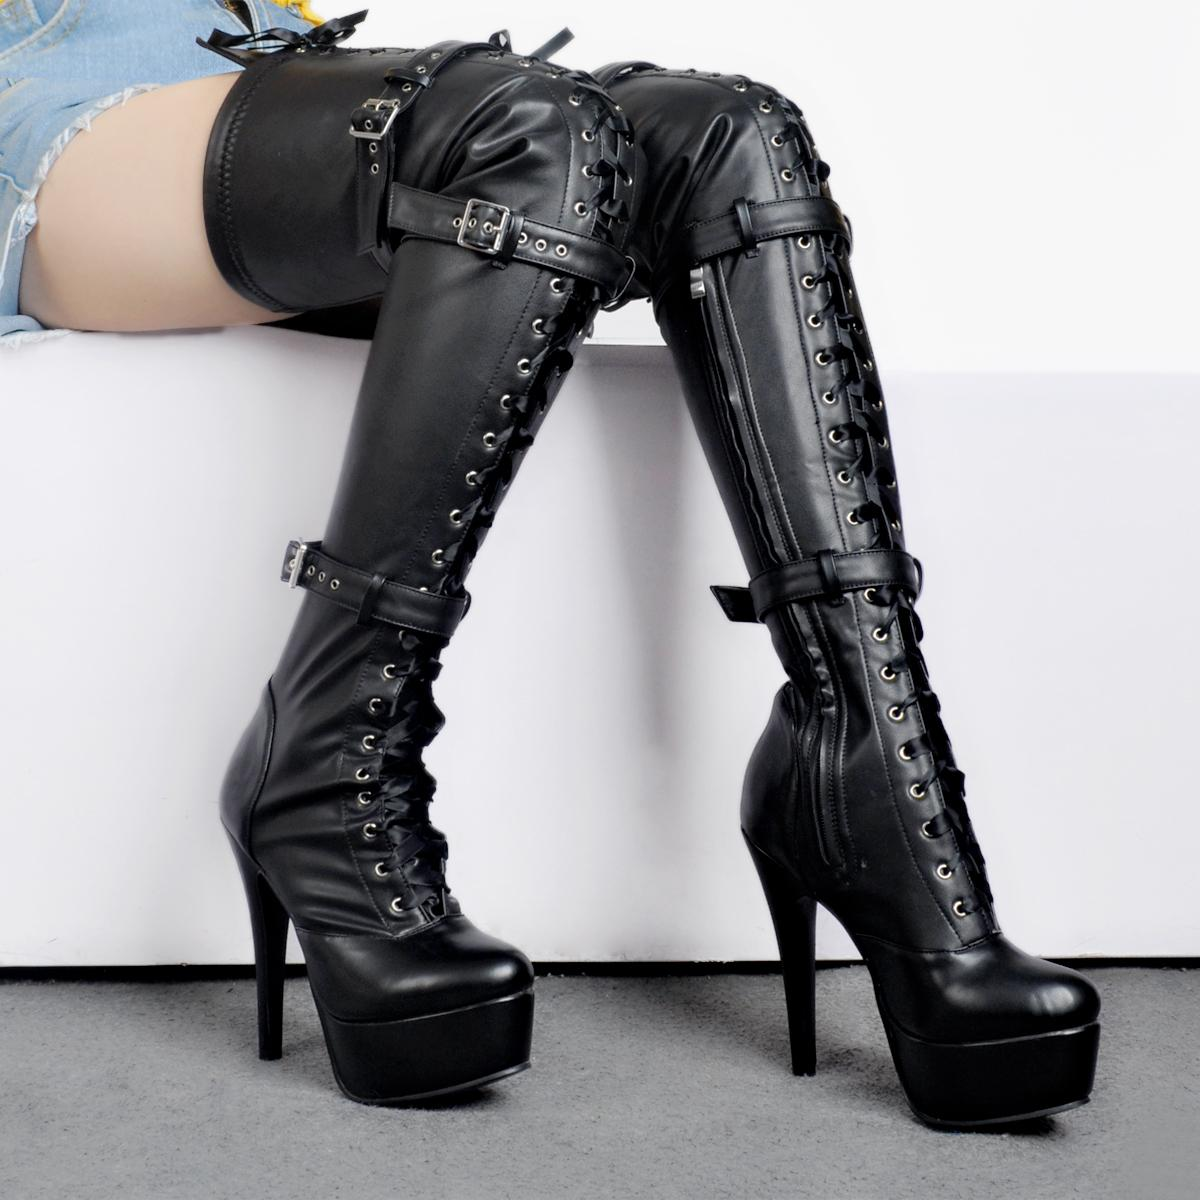 826f9374888e Women Fashion Thin High Heels Platform Sexy Fetish Pointed Toe Buckle Over  The Knee Thigh High Dance Boots Mid Calf Boots Womens Ankle Boots From ...